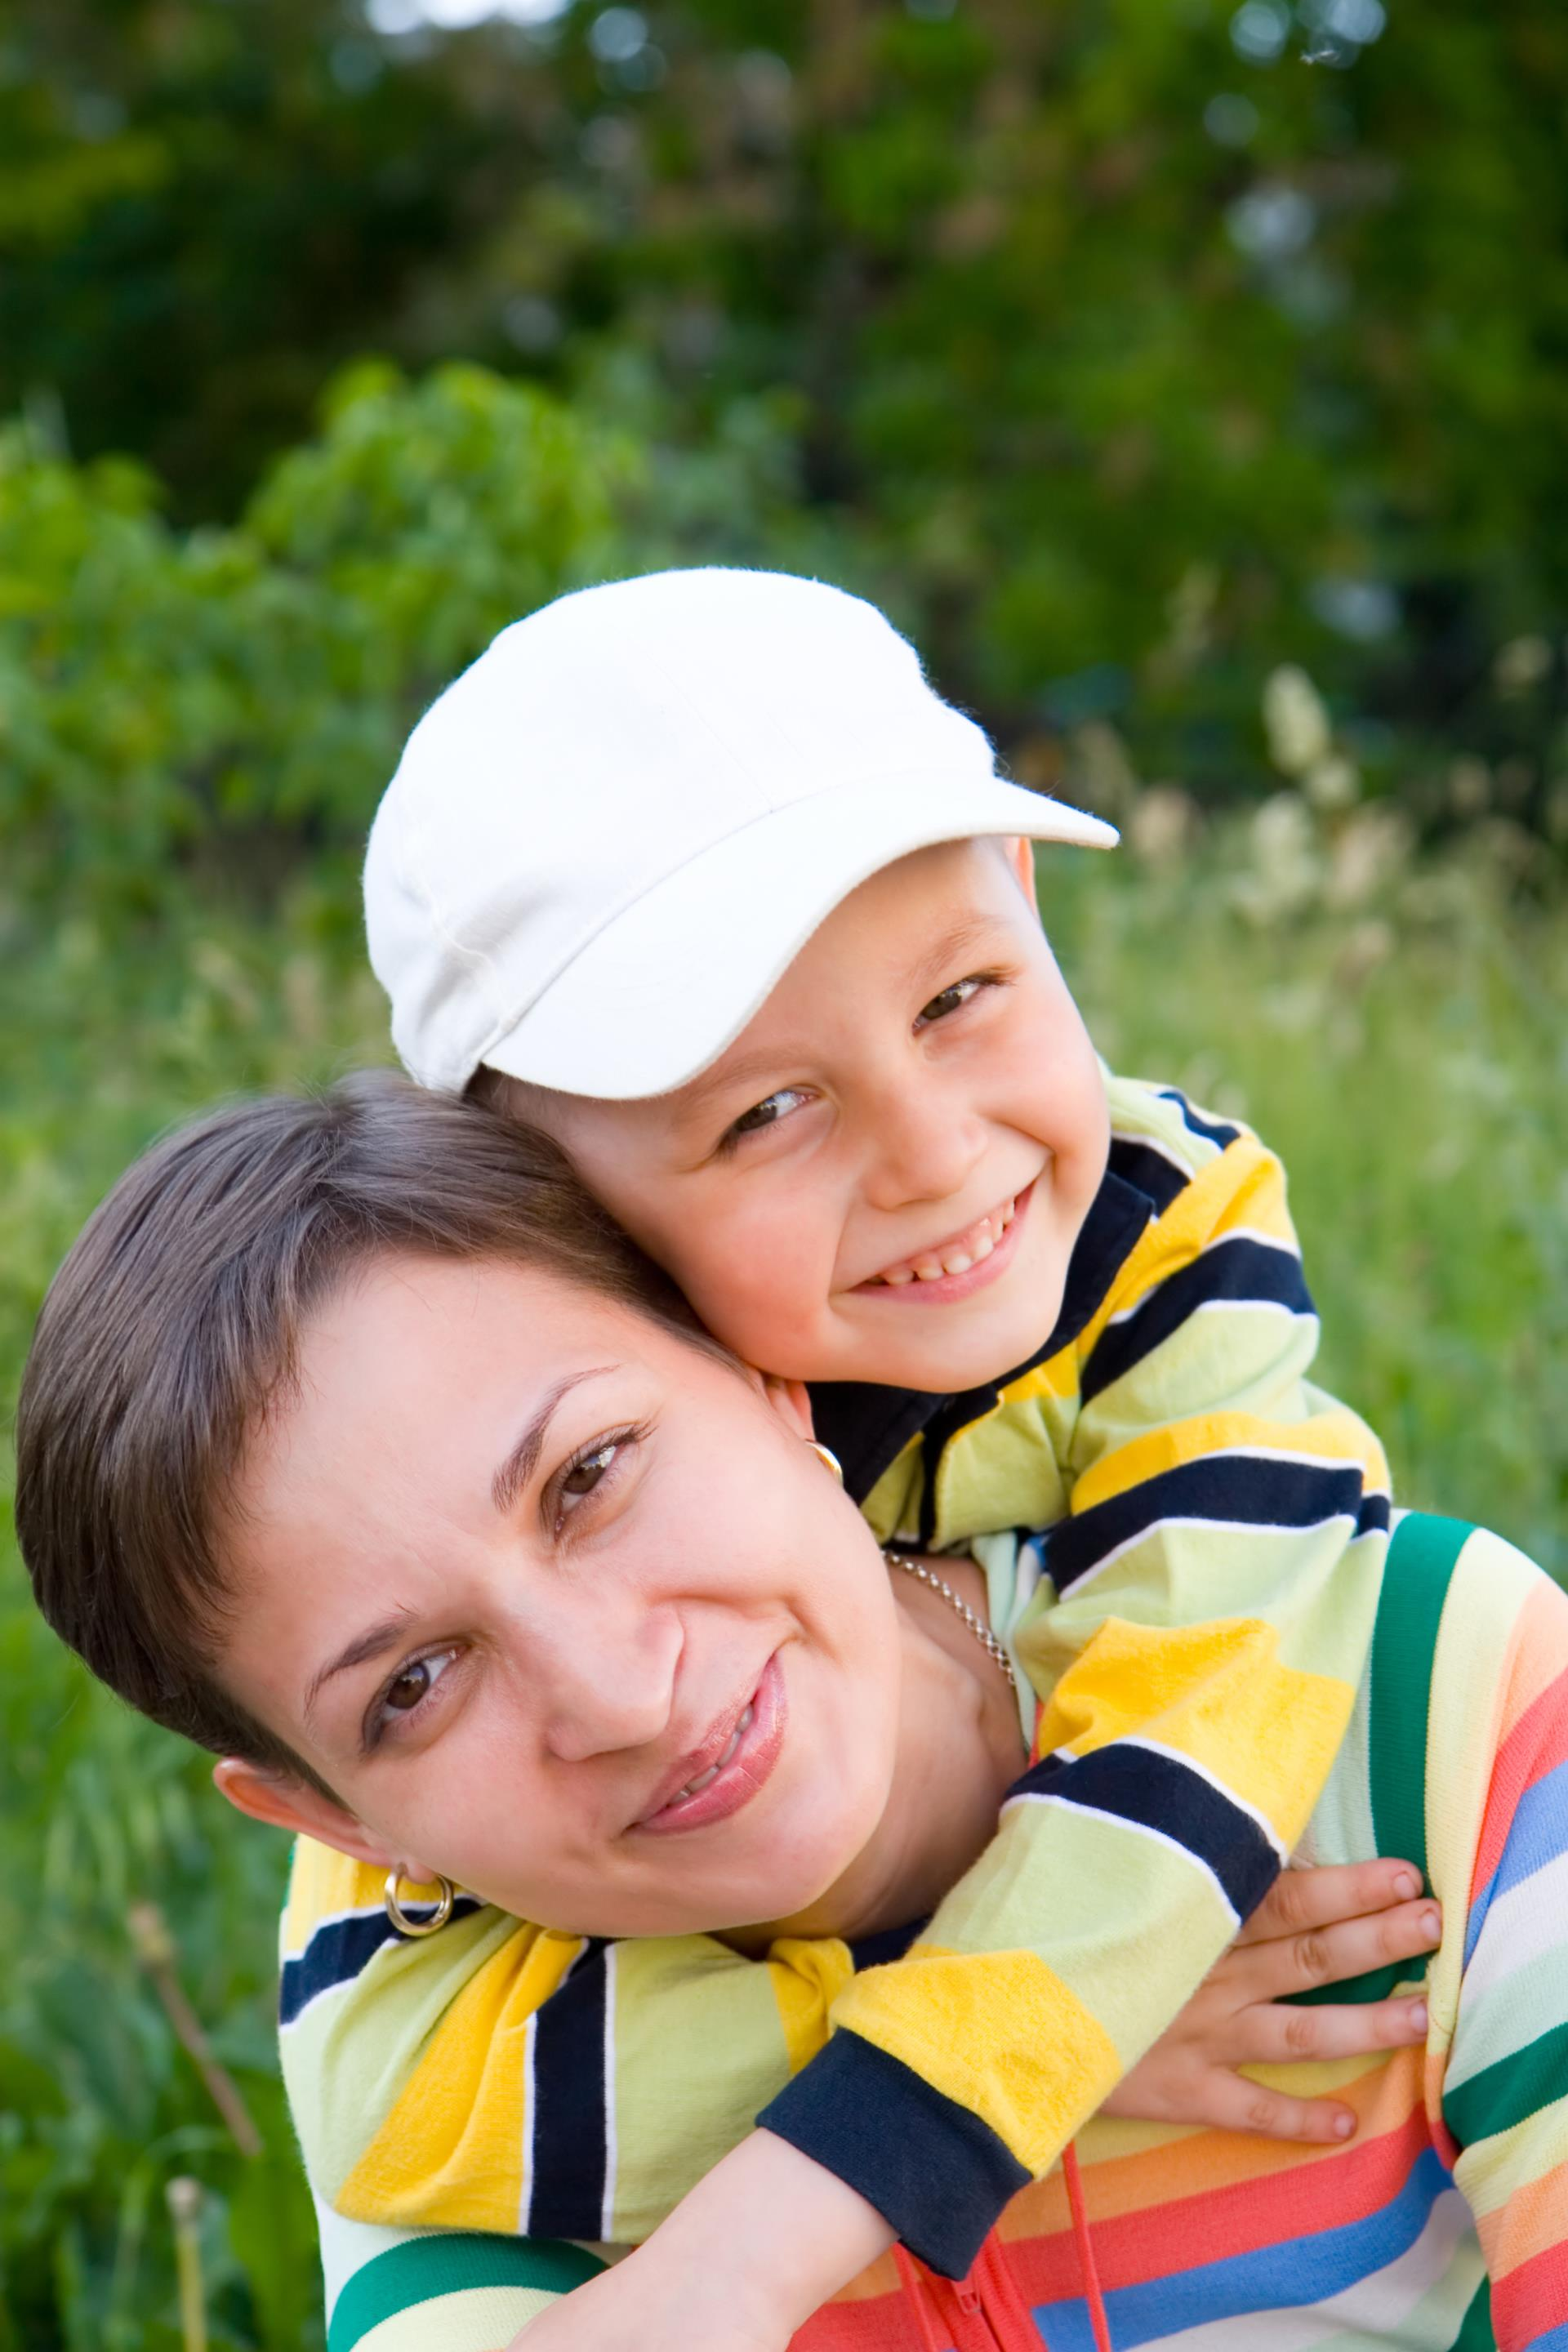 Closeup image of a Mom & Son in a field